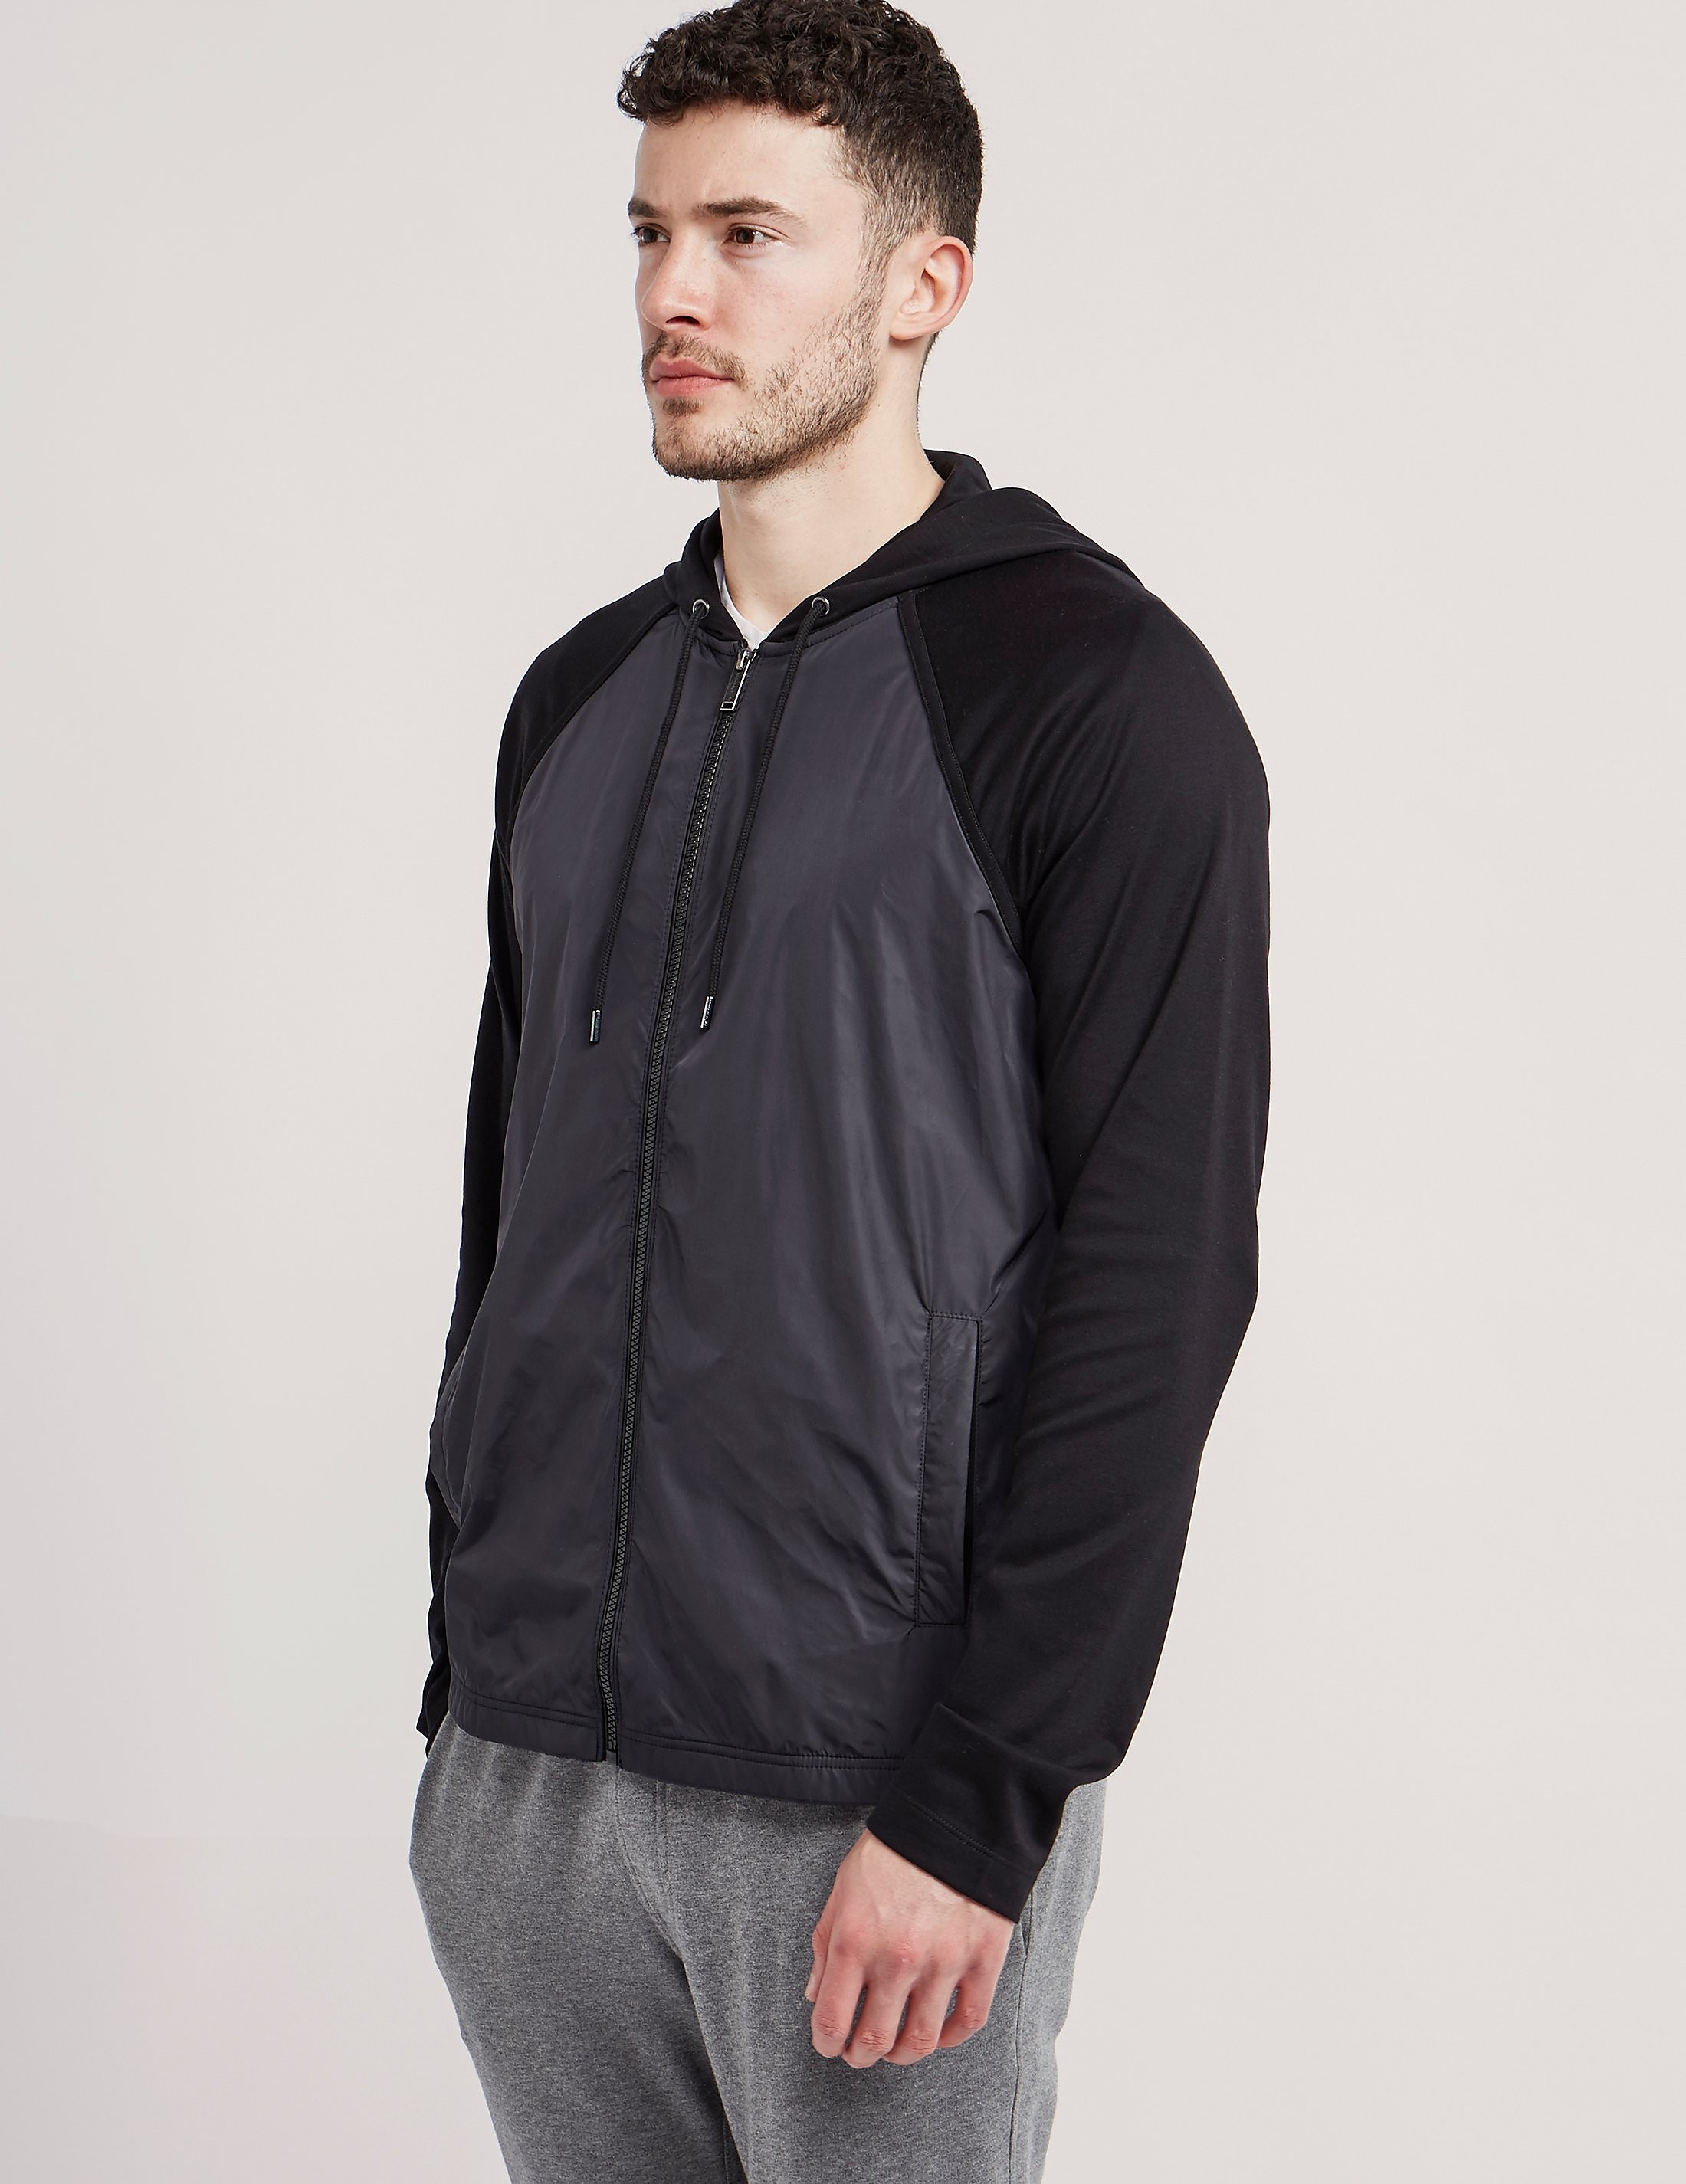 Michael Kors Nylon Panel Hoody